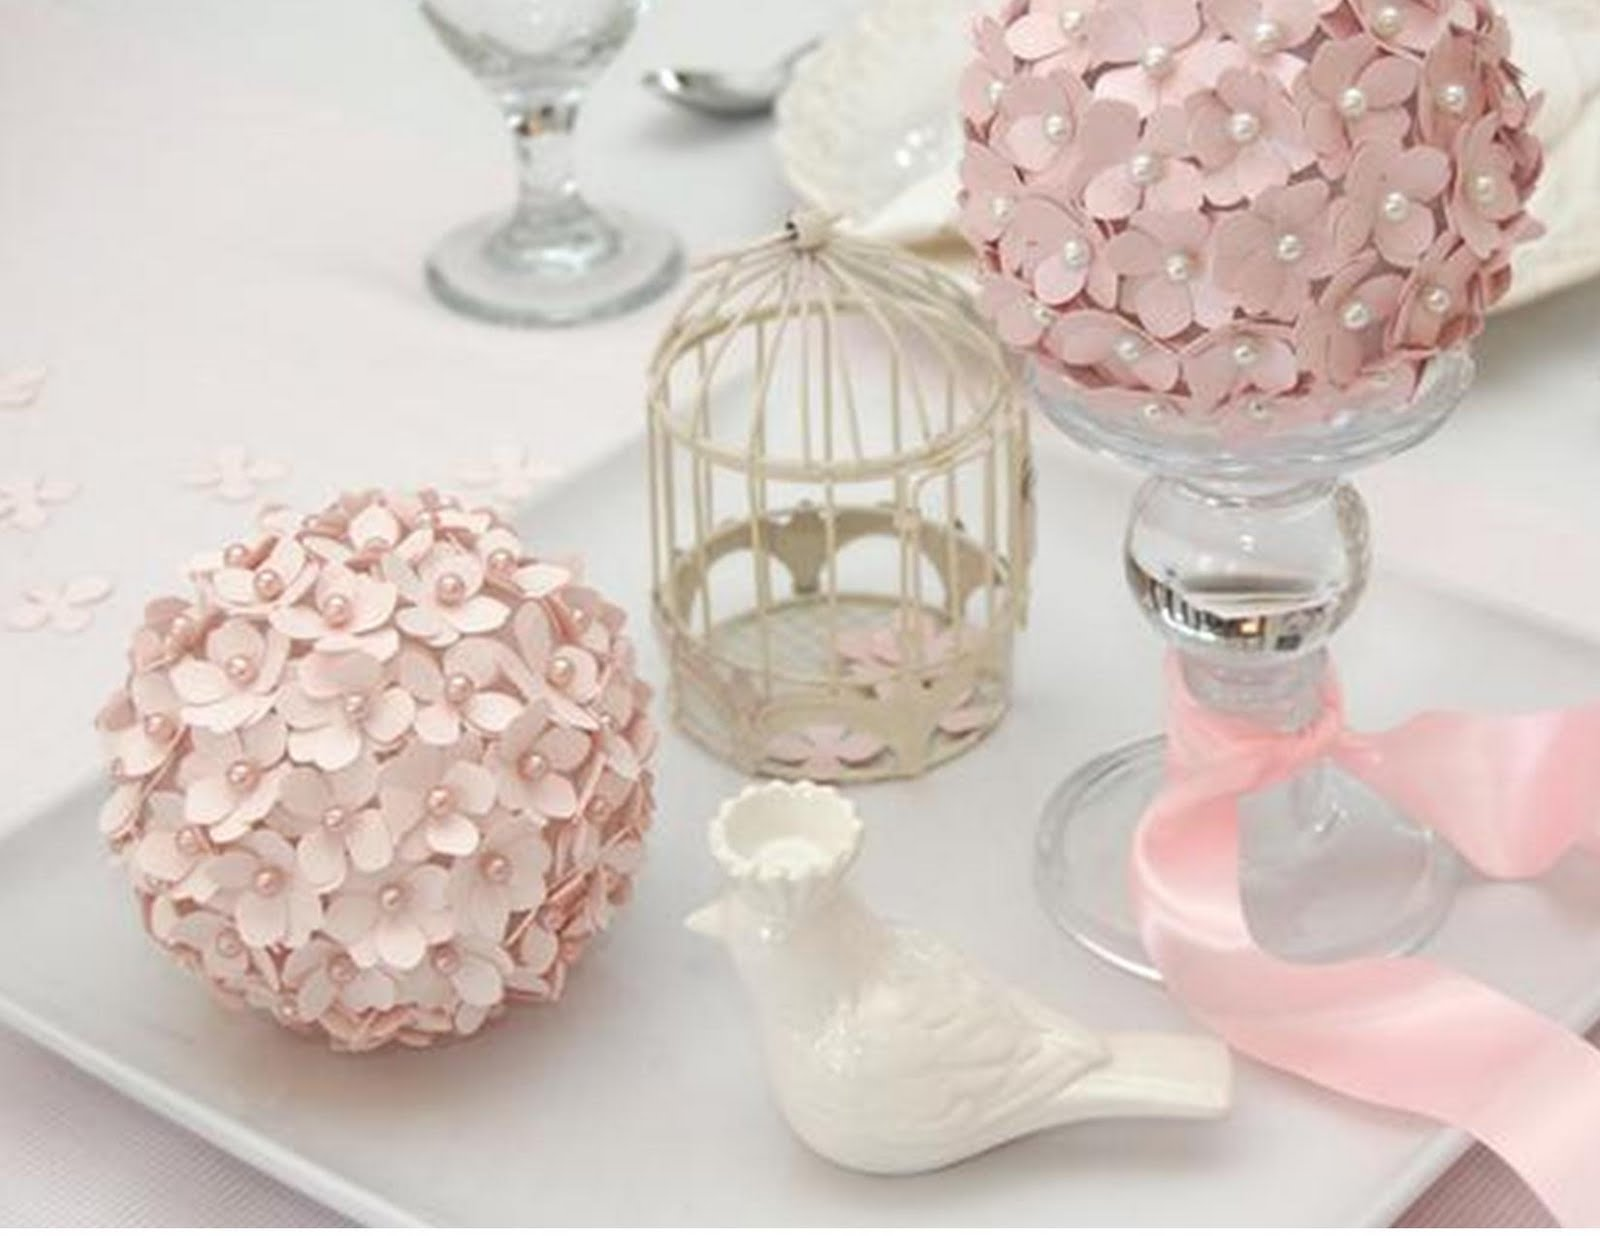 The awesometastic bridal blog diy paper pomander flower balls diy paper pomander flower balls mightylinksfo Choice Image